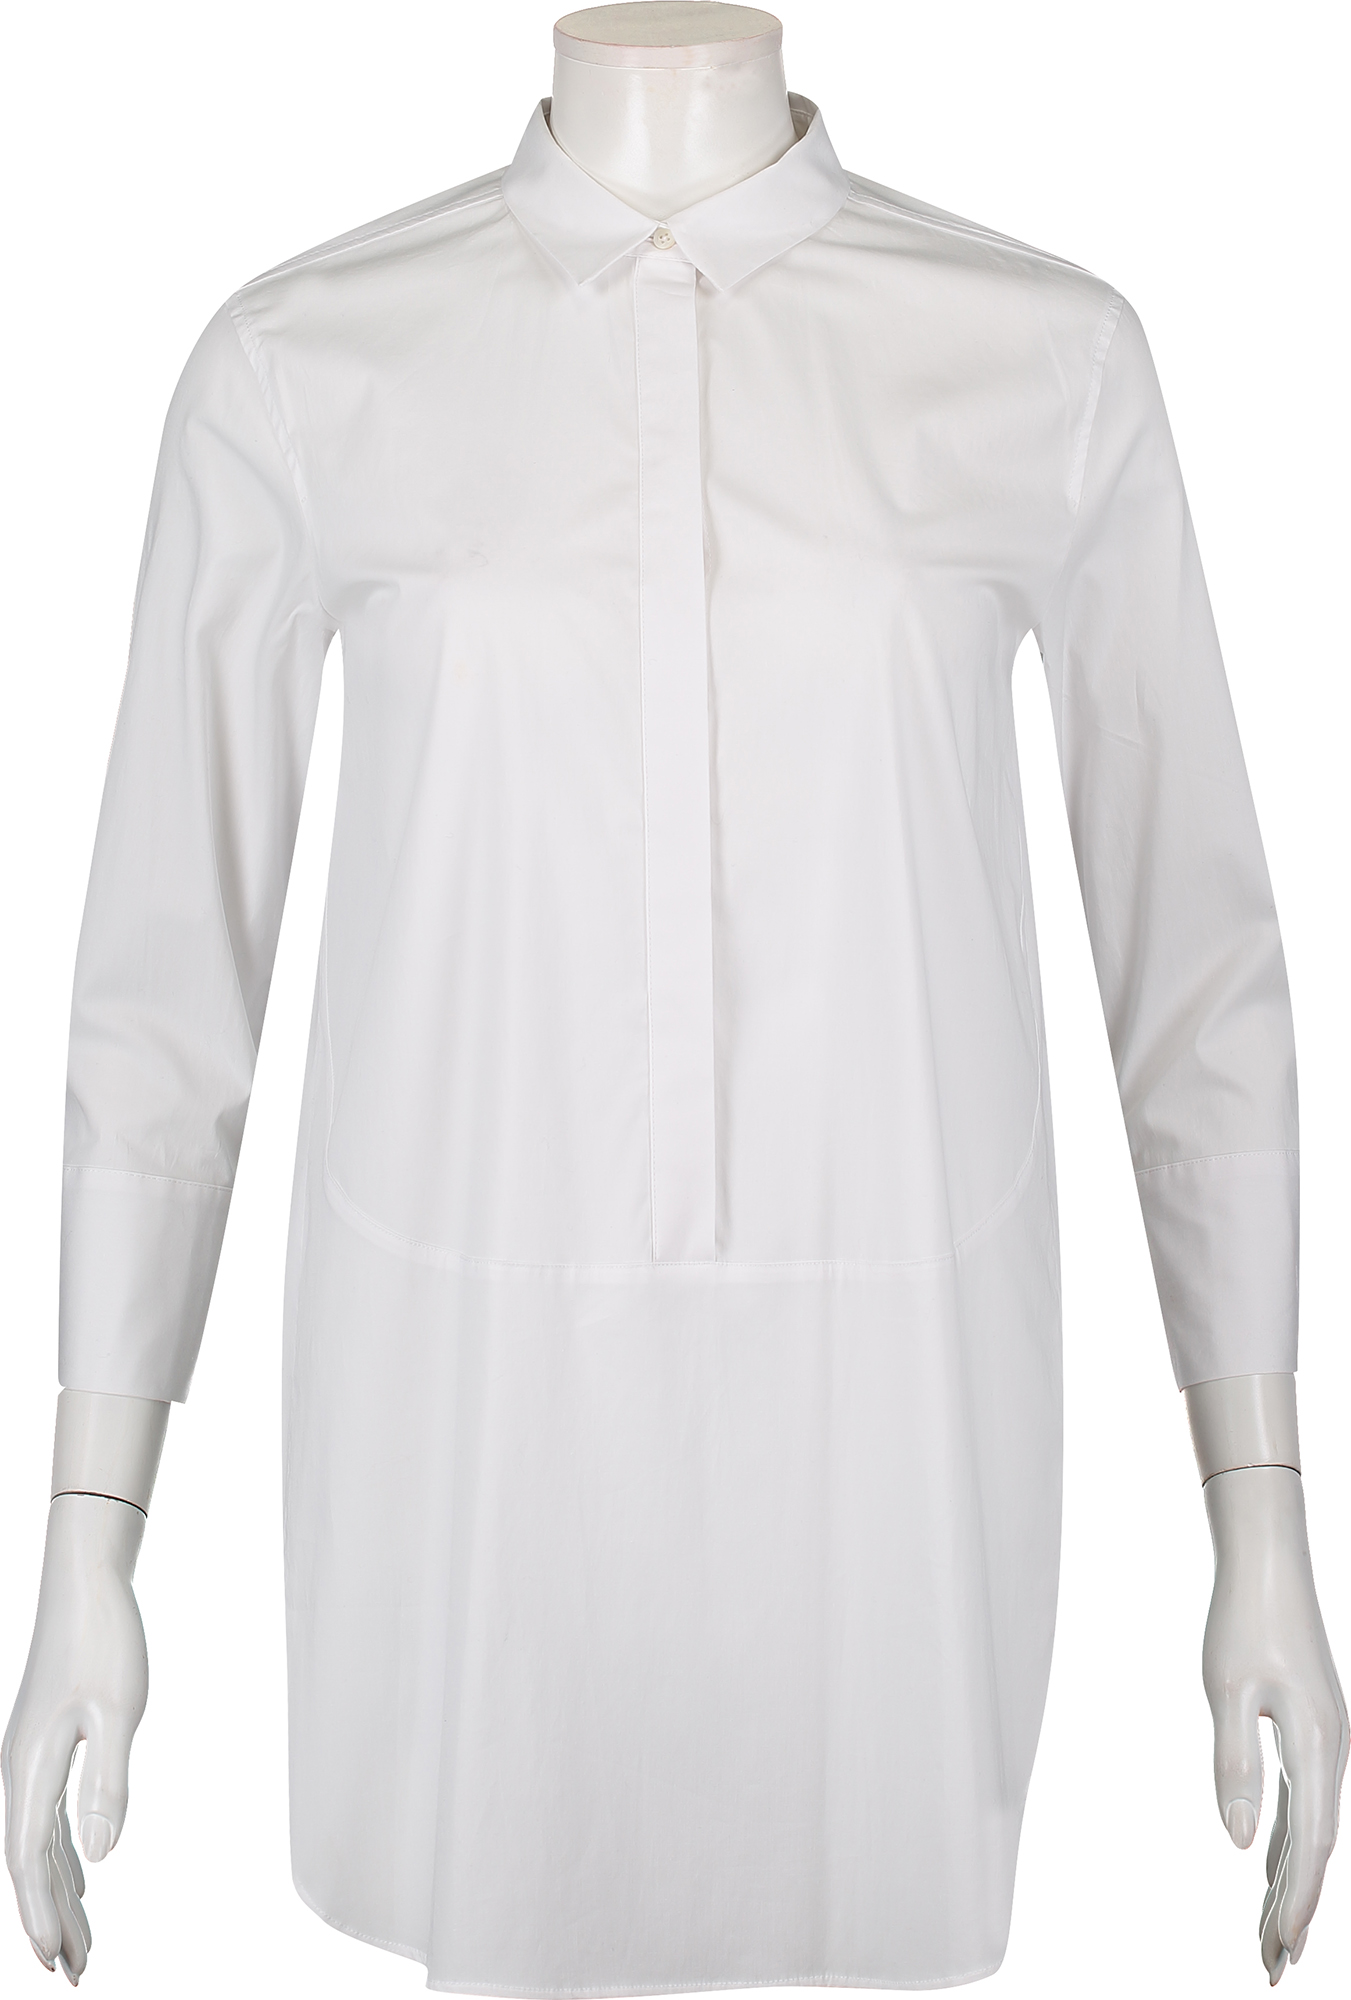 Piet Zoomers, Marc OPolo dames blouse